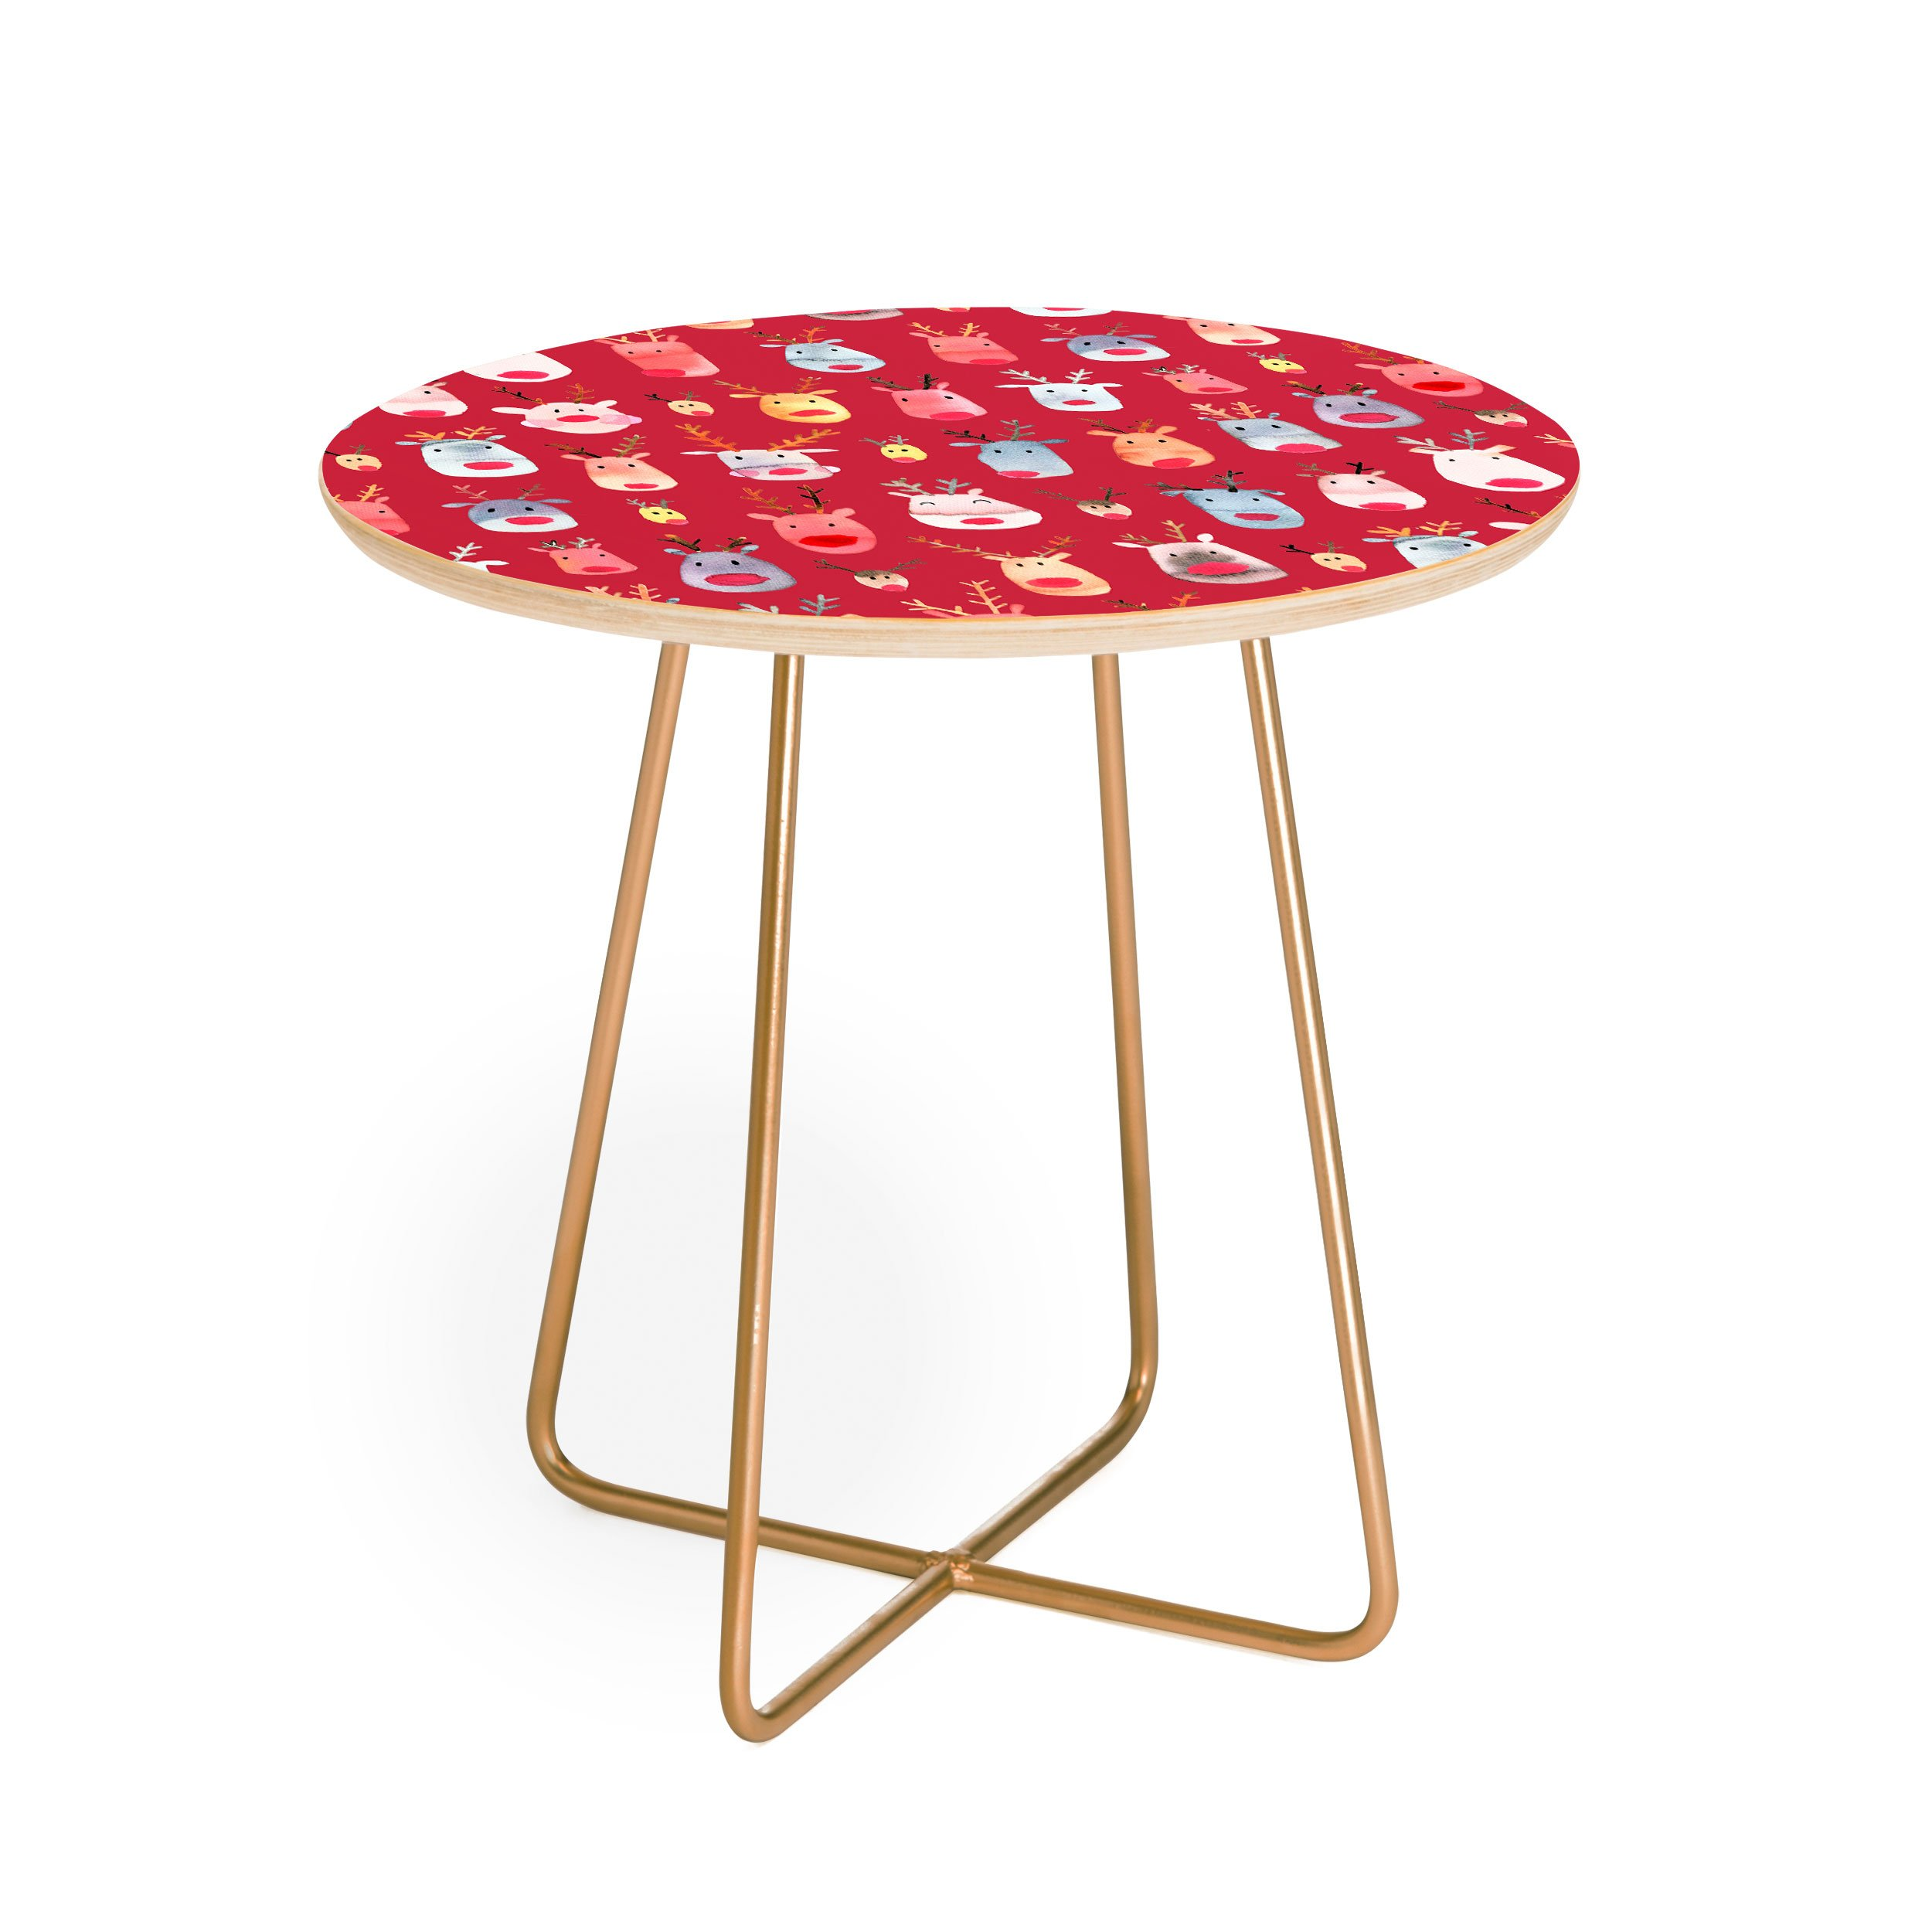 rudolph reindeers red christmas round side table ninola design white background square aston gold outdoor accent large dining rustic farmhouse furniture dark wood trestle plastic